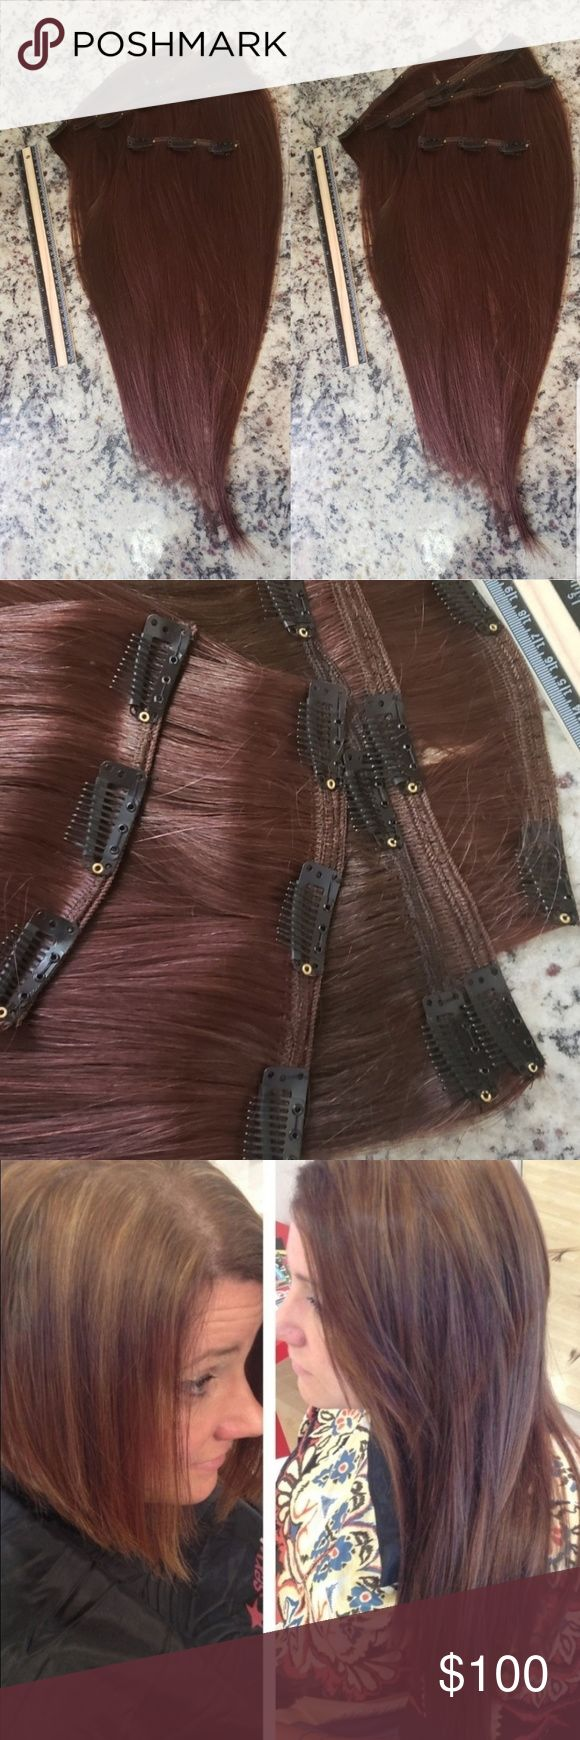 4 pcs Double Wefted 🌟 Clip in Hair Extensions …